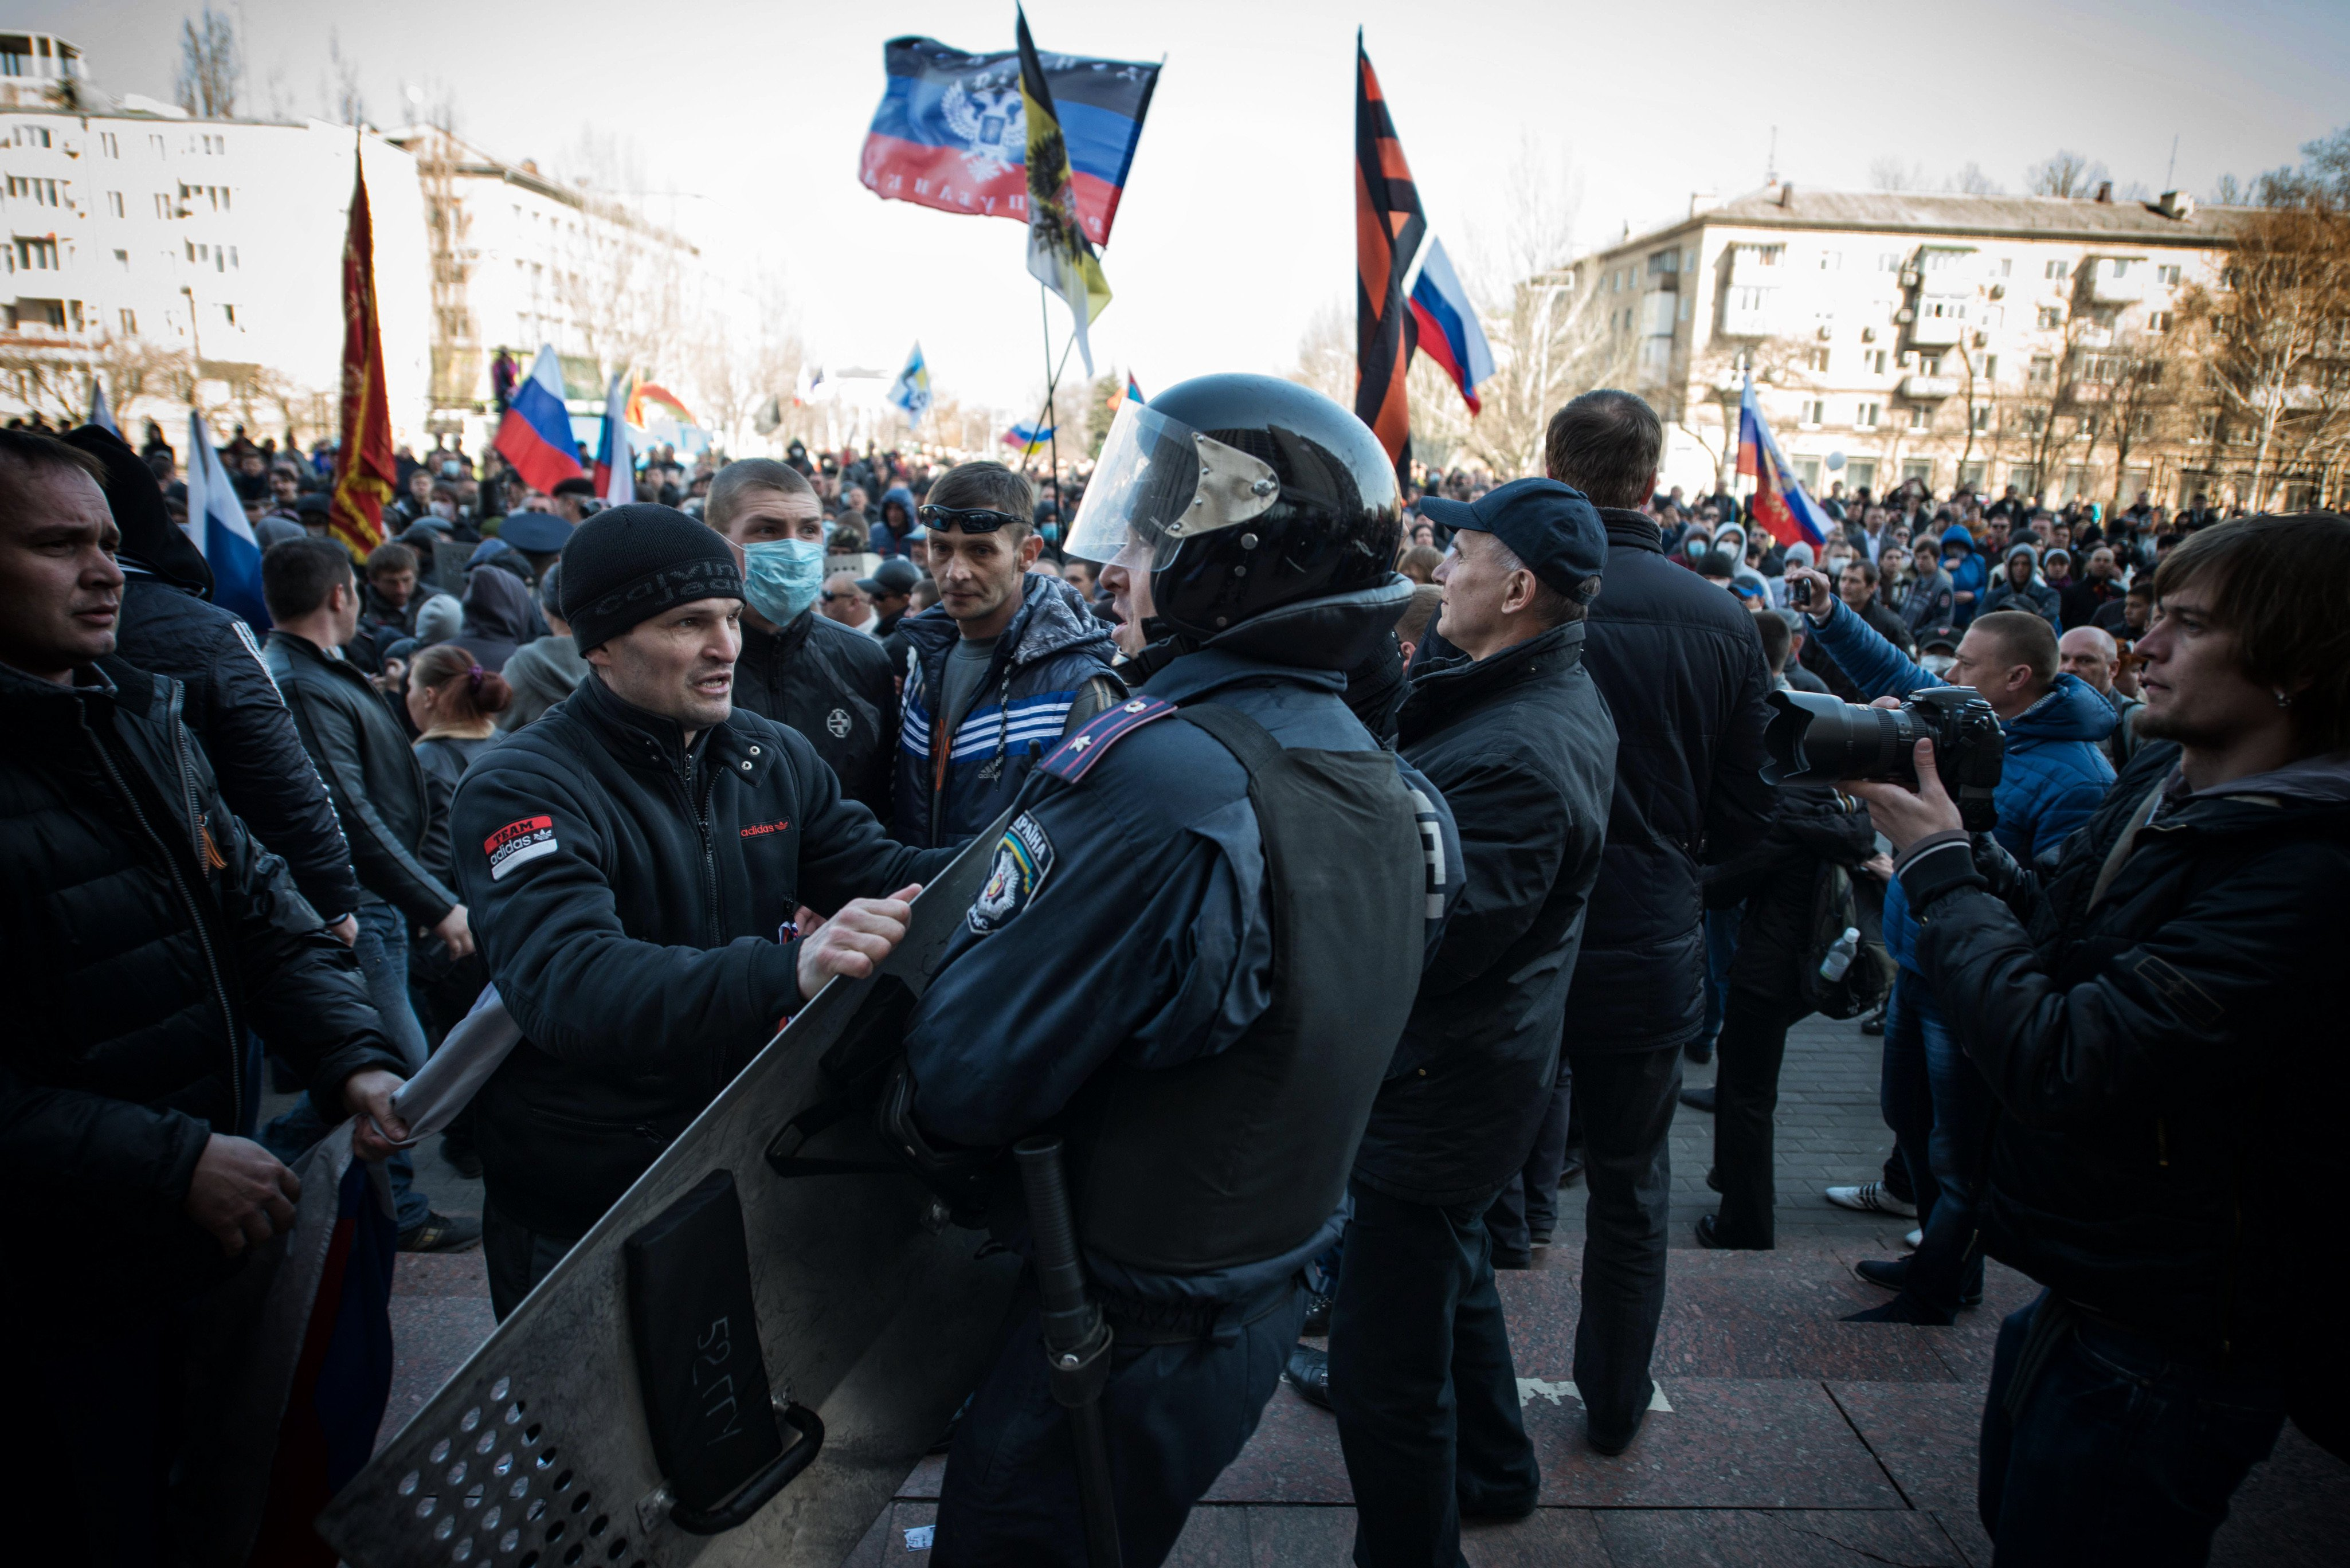 Pro-Russian protesters stormed the regional building of Donetsk on April 6, 2014.